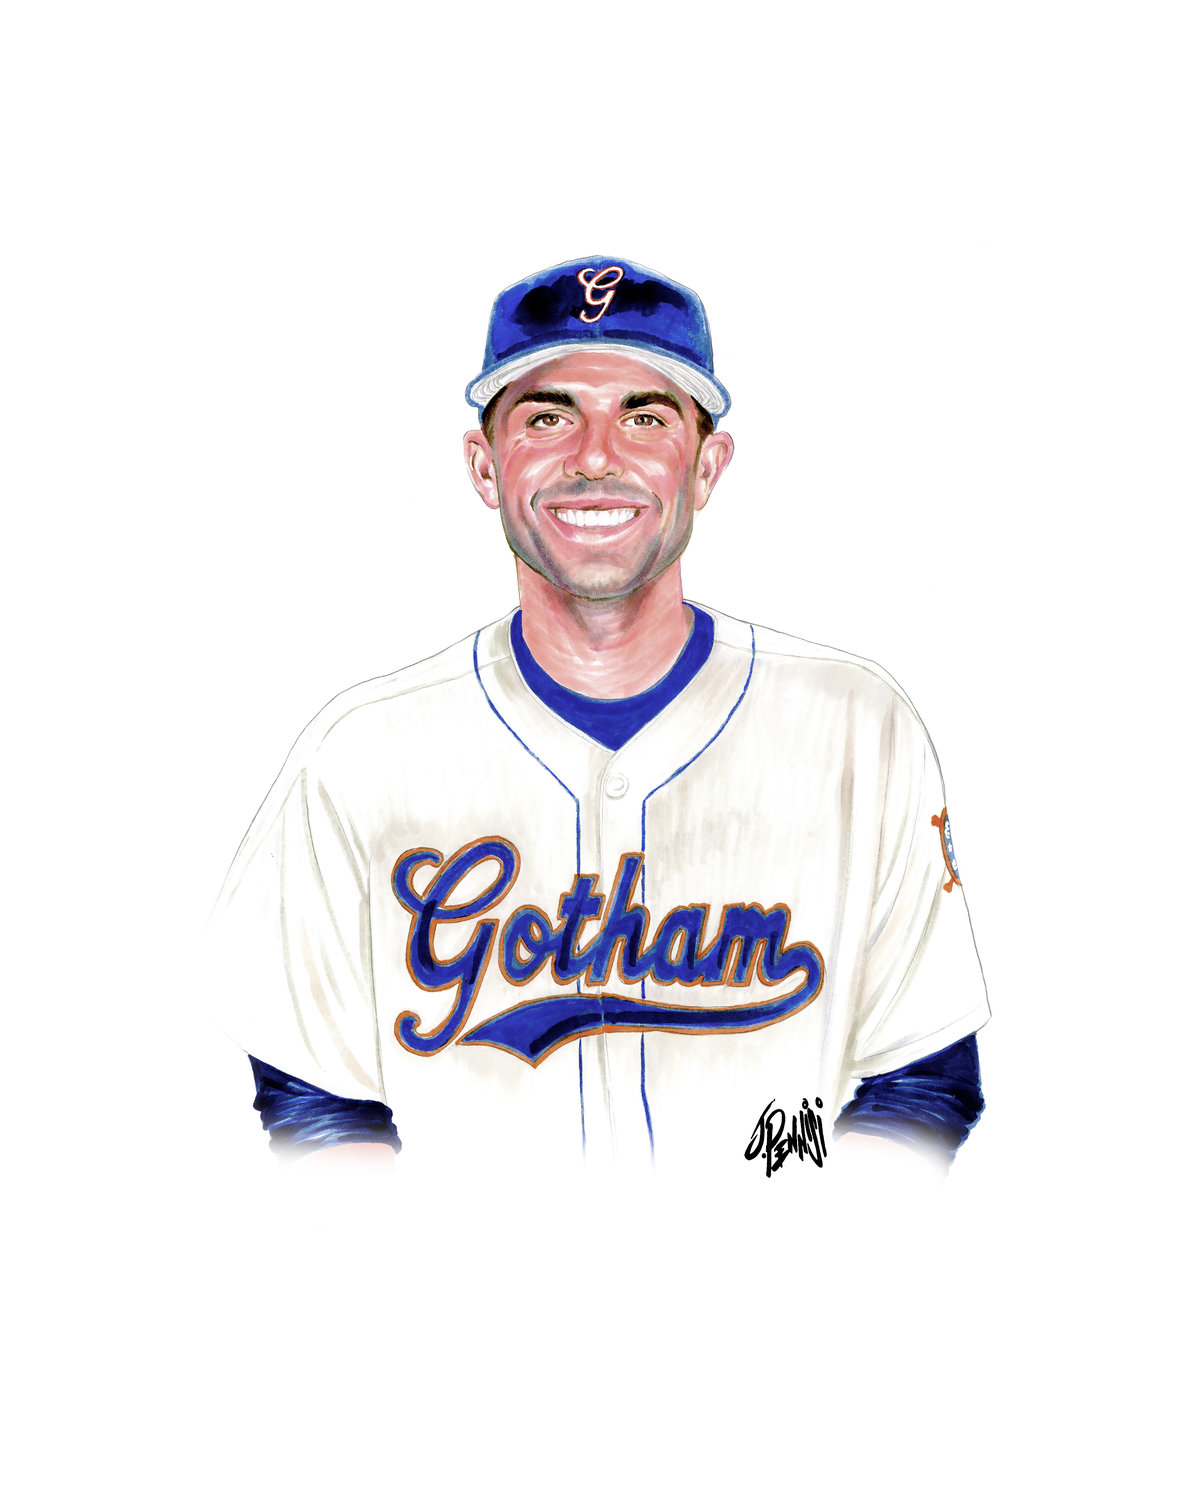 Former New York Mets third baseman David Wright was named part of New York's all-time baseball team in the book. The uniform was designed by Todd Radom, and John Pennisi illustrated Wright and other players.